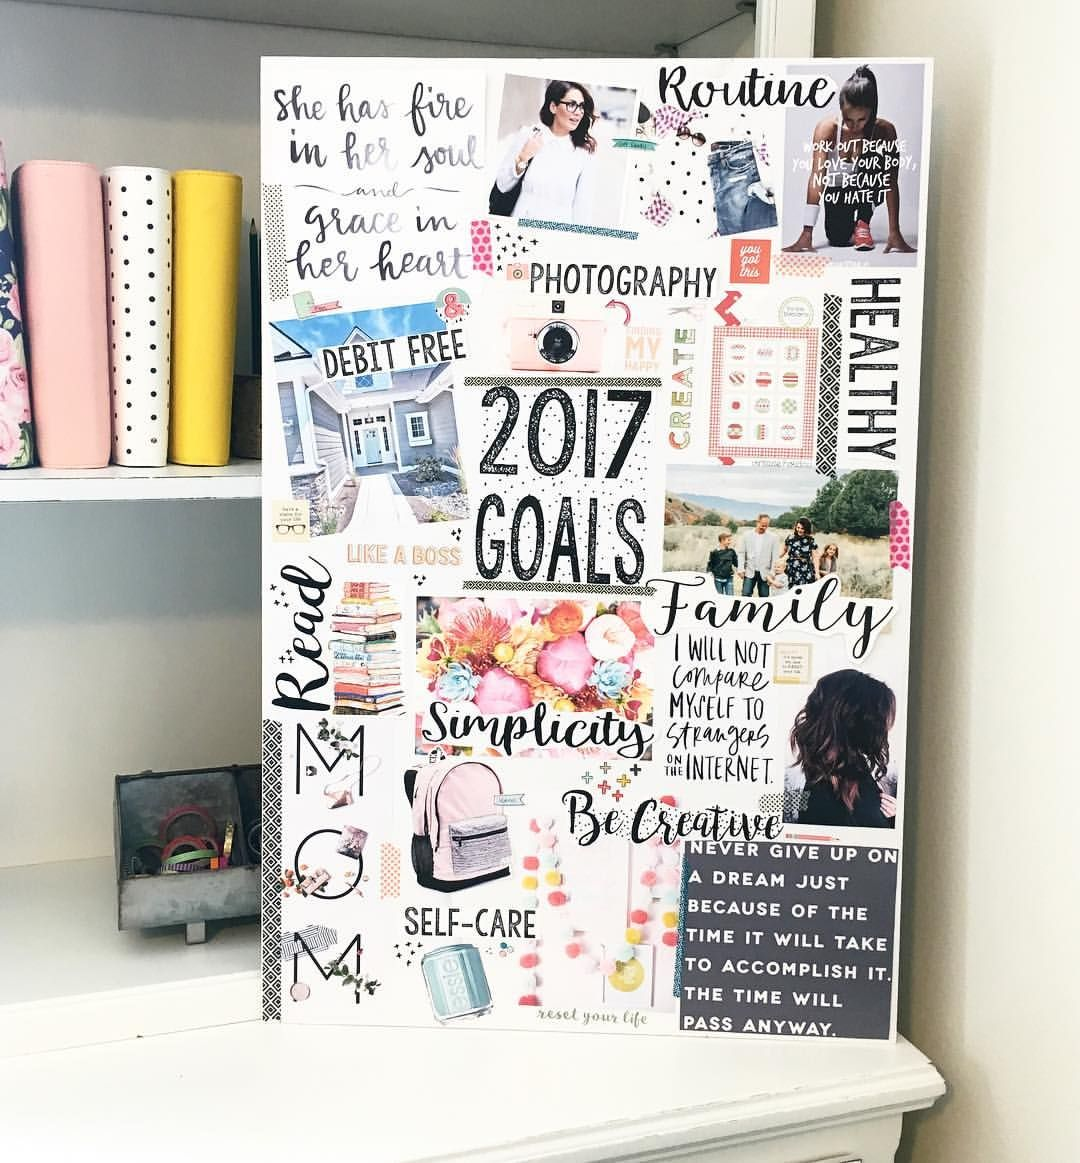 181 Likes, 15 Comments - Krystal (@simply_girly_blog) on ... Girly Blog Instagram